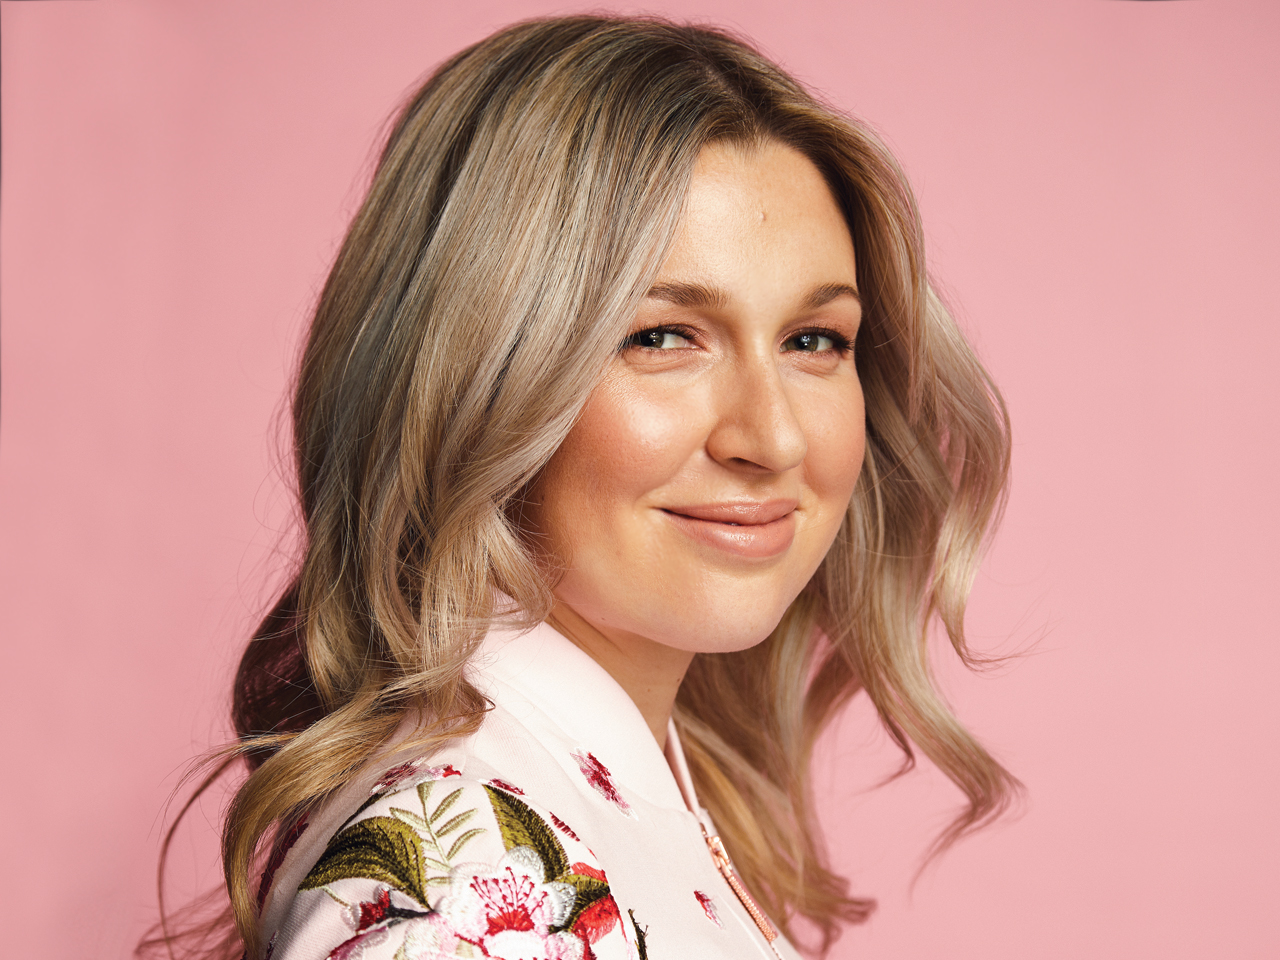 A woman with blonde, voluminous curls on a pink background to illustrate an article on volumizing hair tips for fine hair.